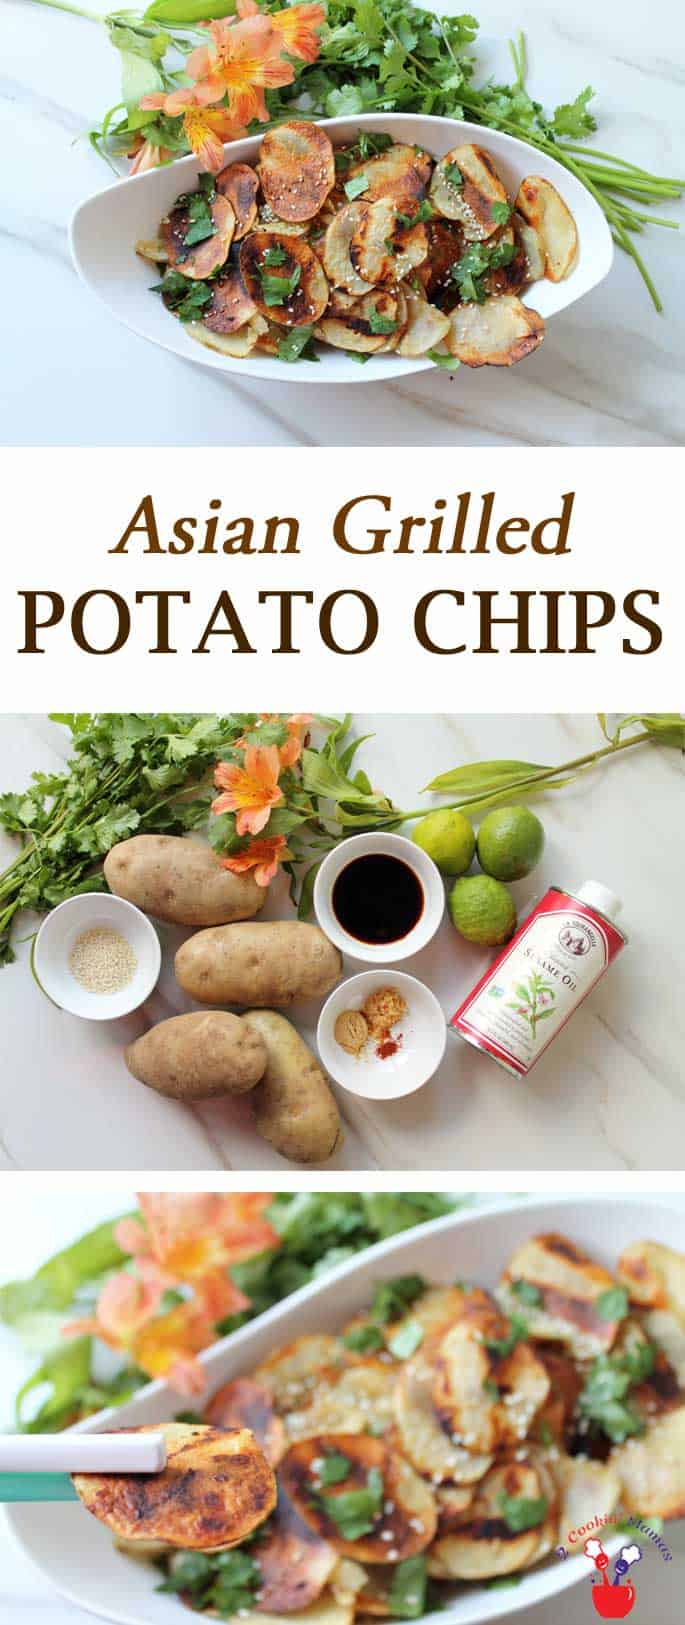 Get your spicy on & grab your chopsticks! These Asian Grilled Potato Chips are the perfect side dish for dinner when just ordinary potato chips won't do. #Icantbelieveitspotatoes #ad